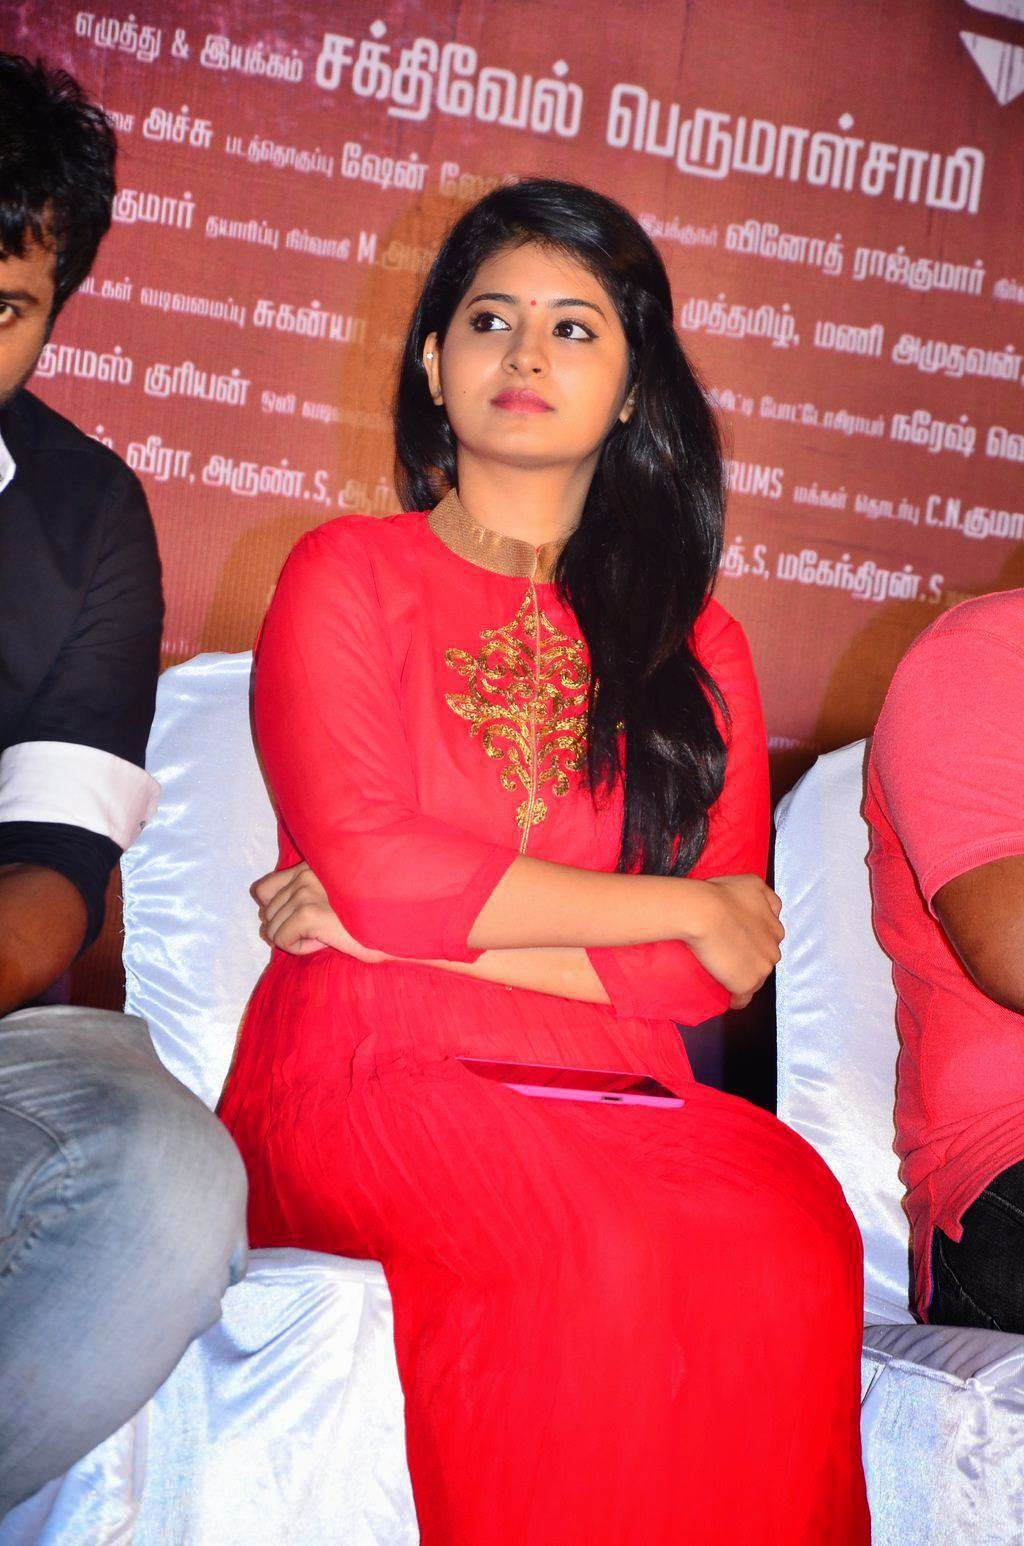 Actress Celebrities Photos: Tamil Heroine Reshmi Menon ...